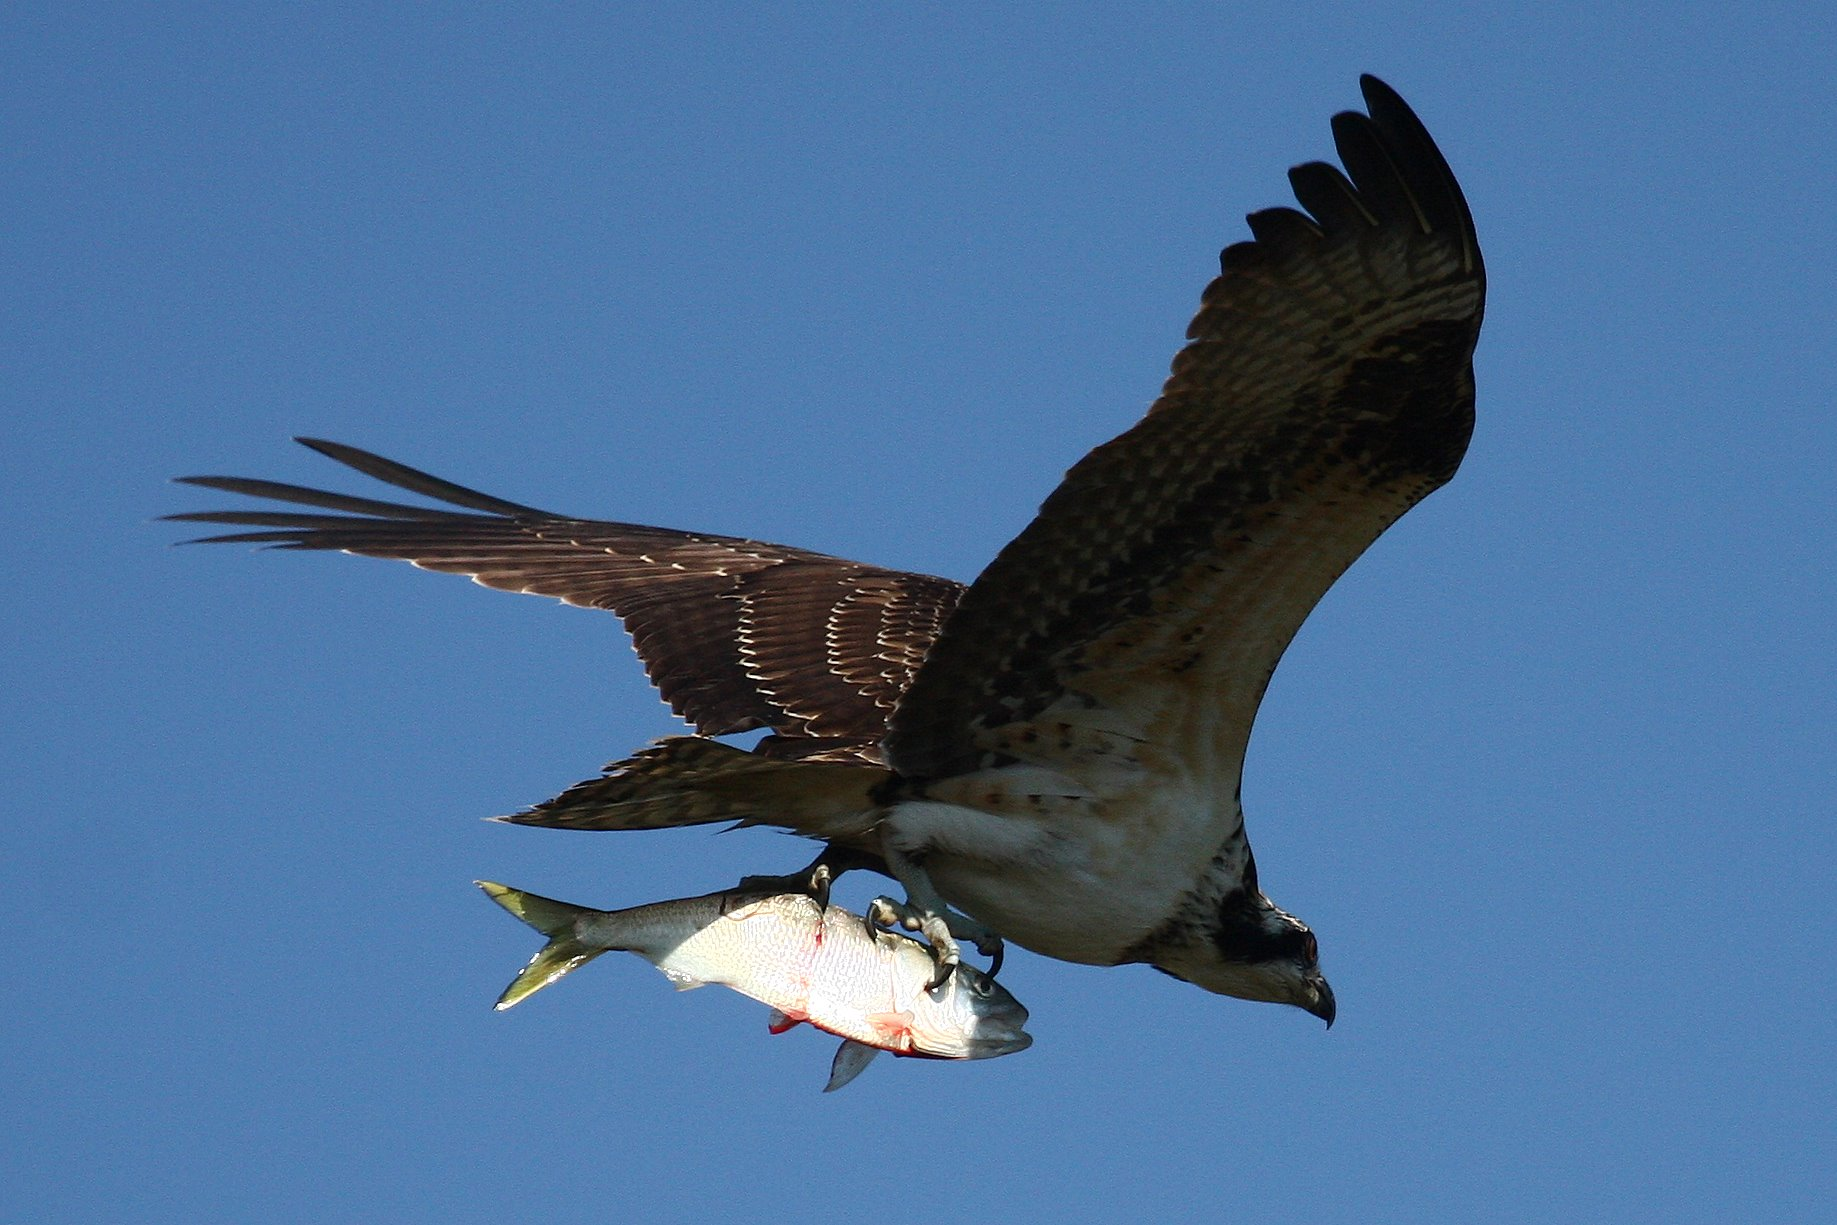 Flying high: the ospreys are alright!